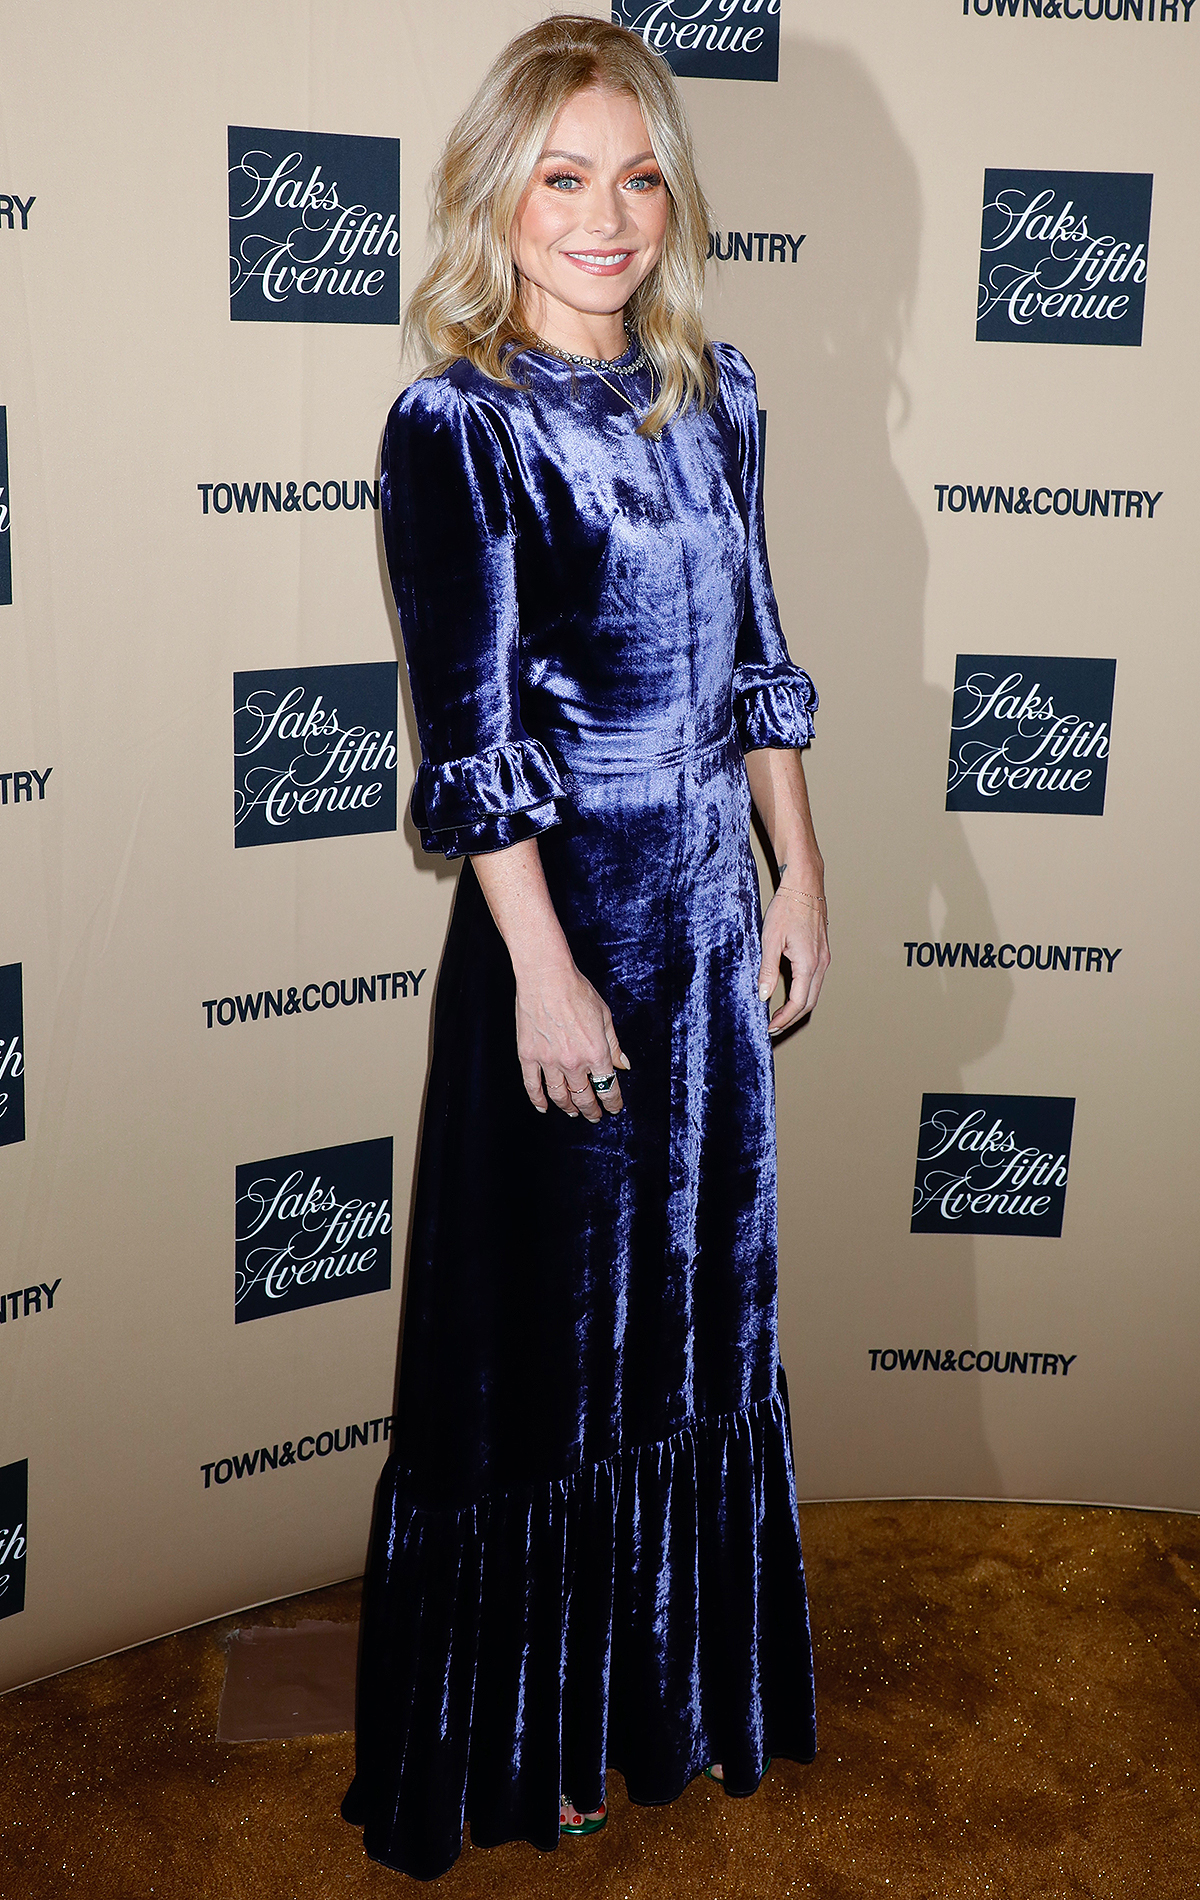 Town & Country Jewelry Awards, New York, USA - 24 Jan 2019